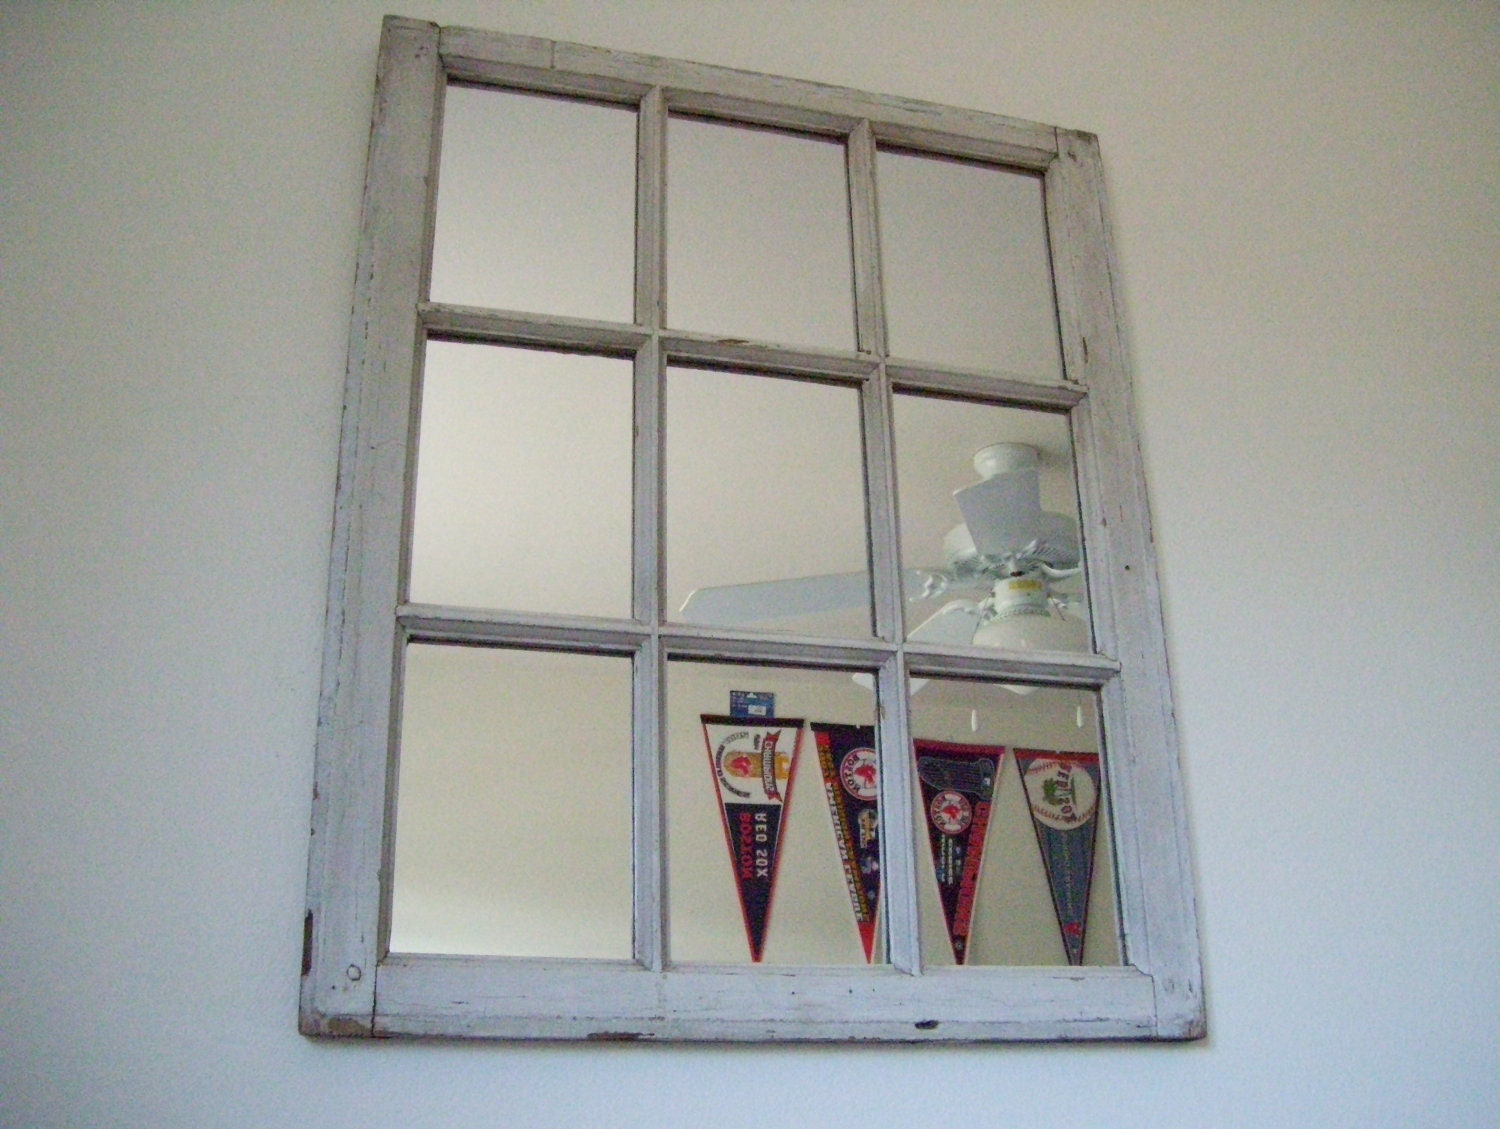 Decorative rustic white 9 pane window frame by for White framed decorative mirror